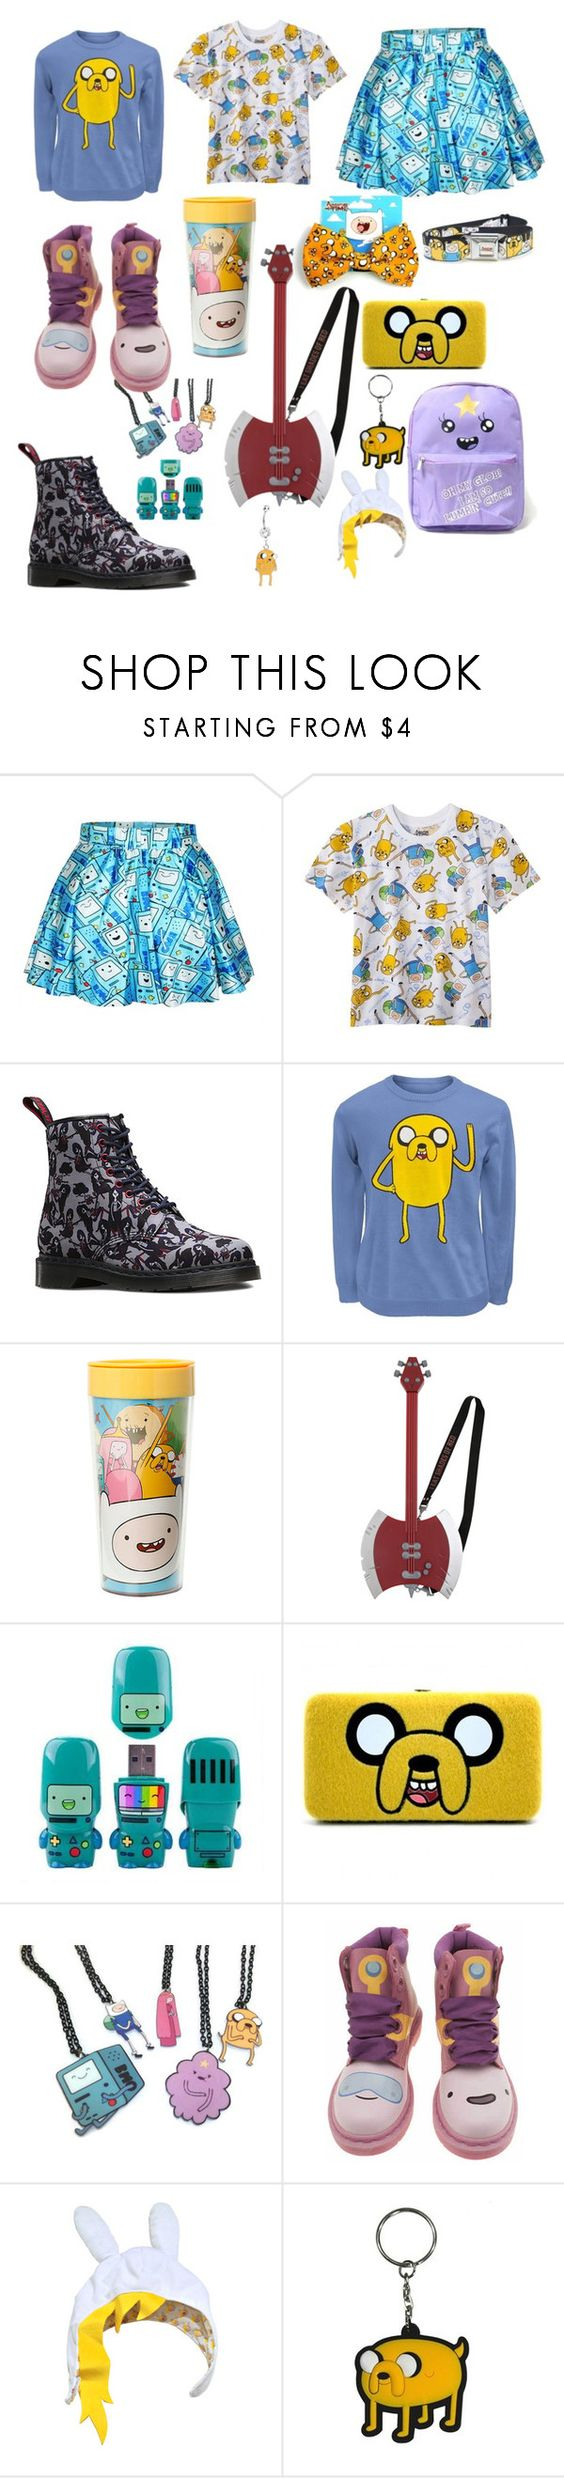 """""""Adventure Time"""" by chiara-calcagno ❤ liked on Polyvore featuring Dr. Martens"""